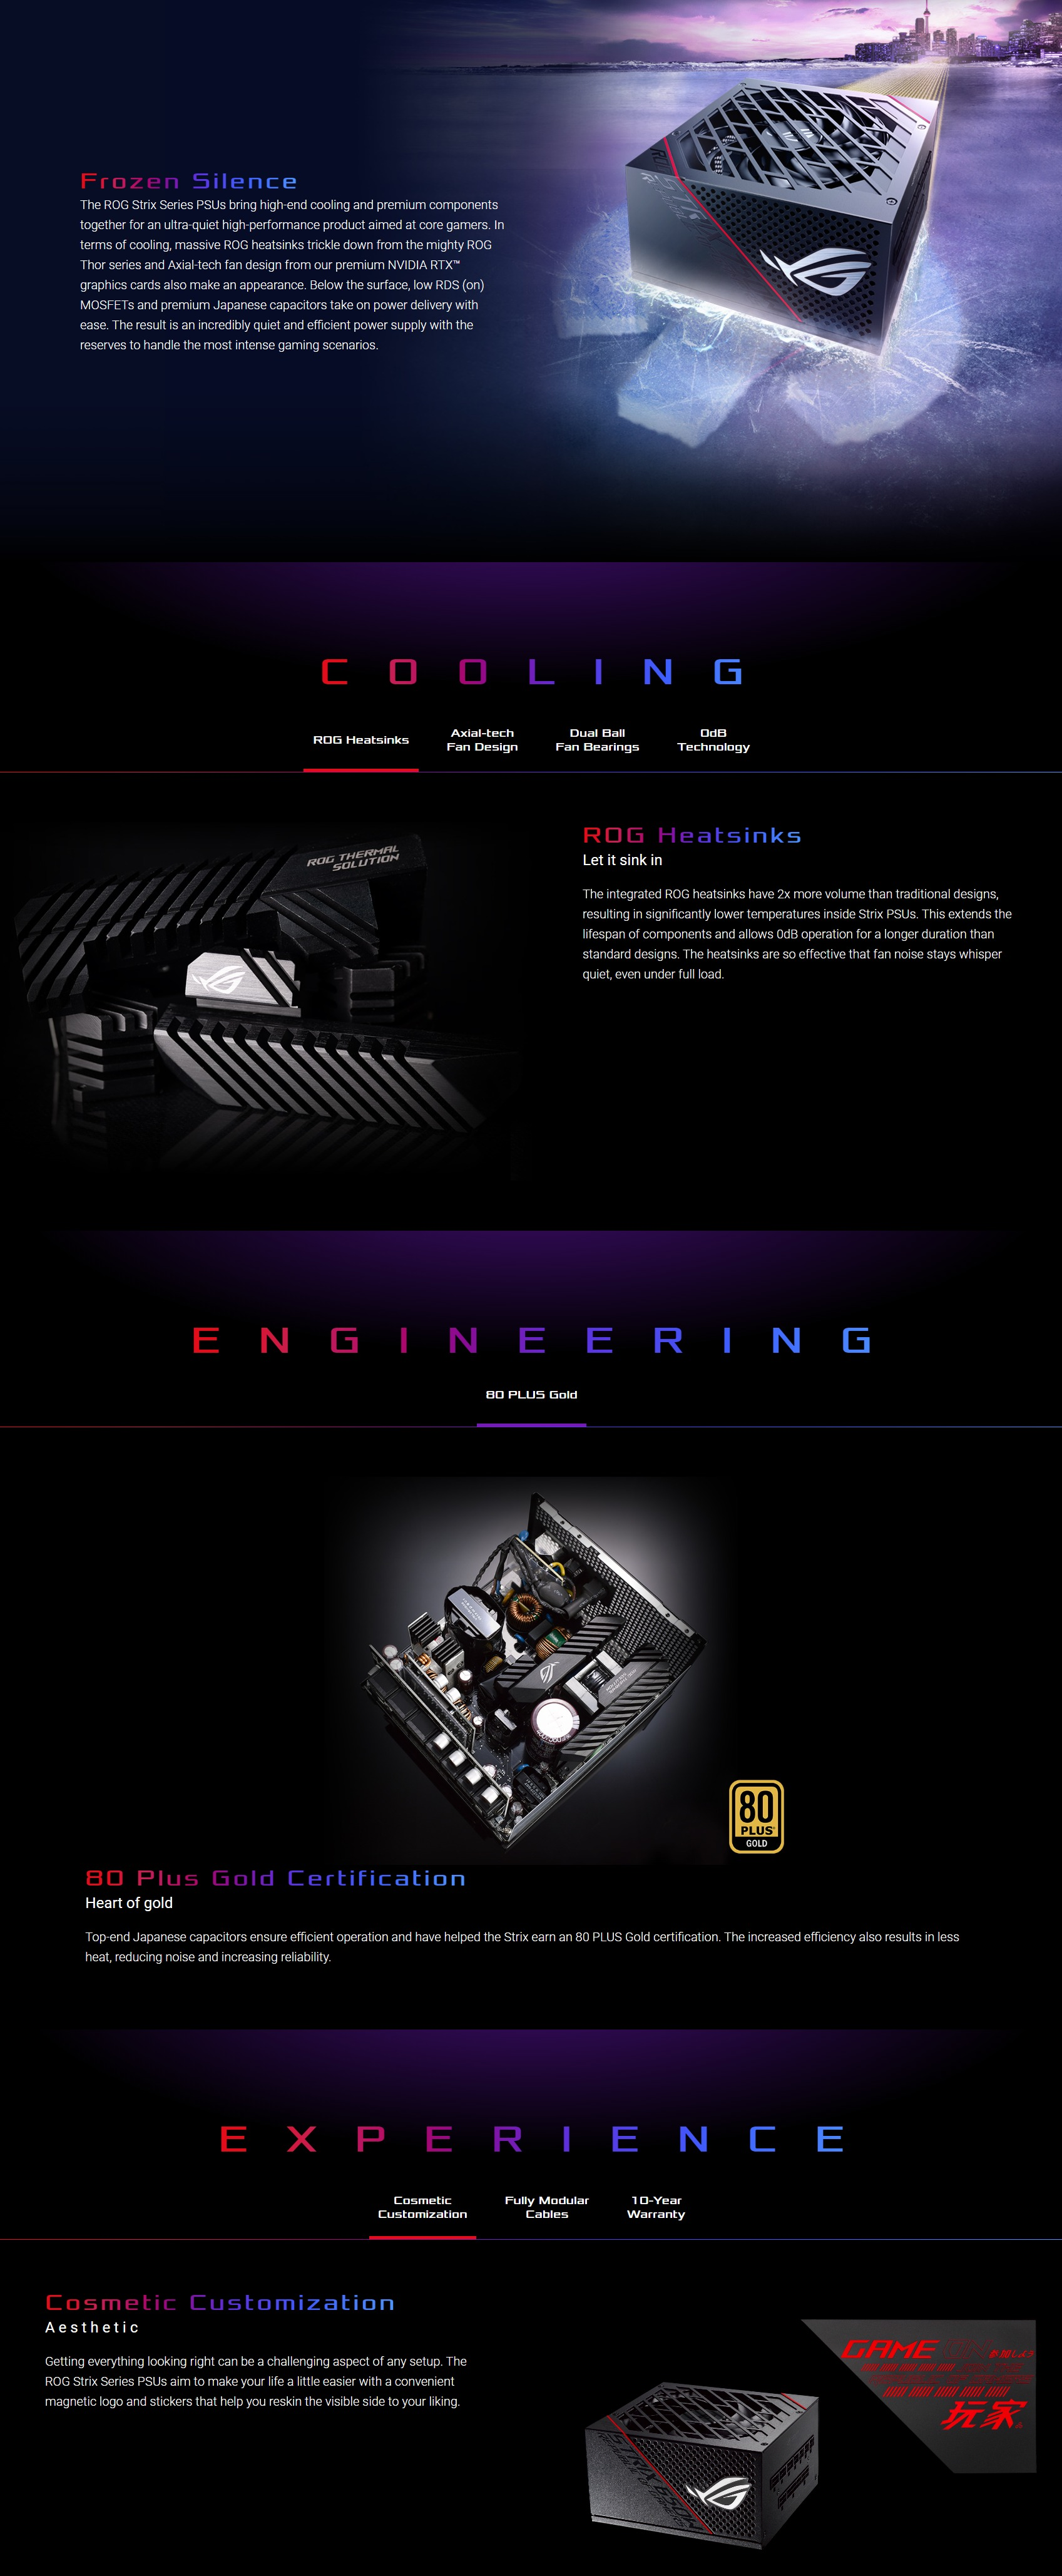 A large marketing image providing additional information about the product ASUS ROG Strix 750W 80PLUS Gold Modular Power Supply - Additional alt info not provided